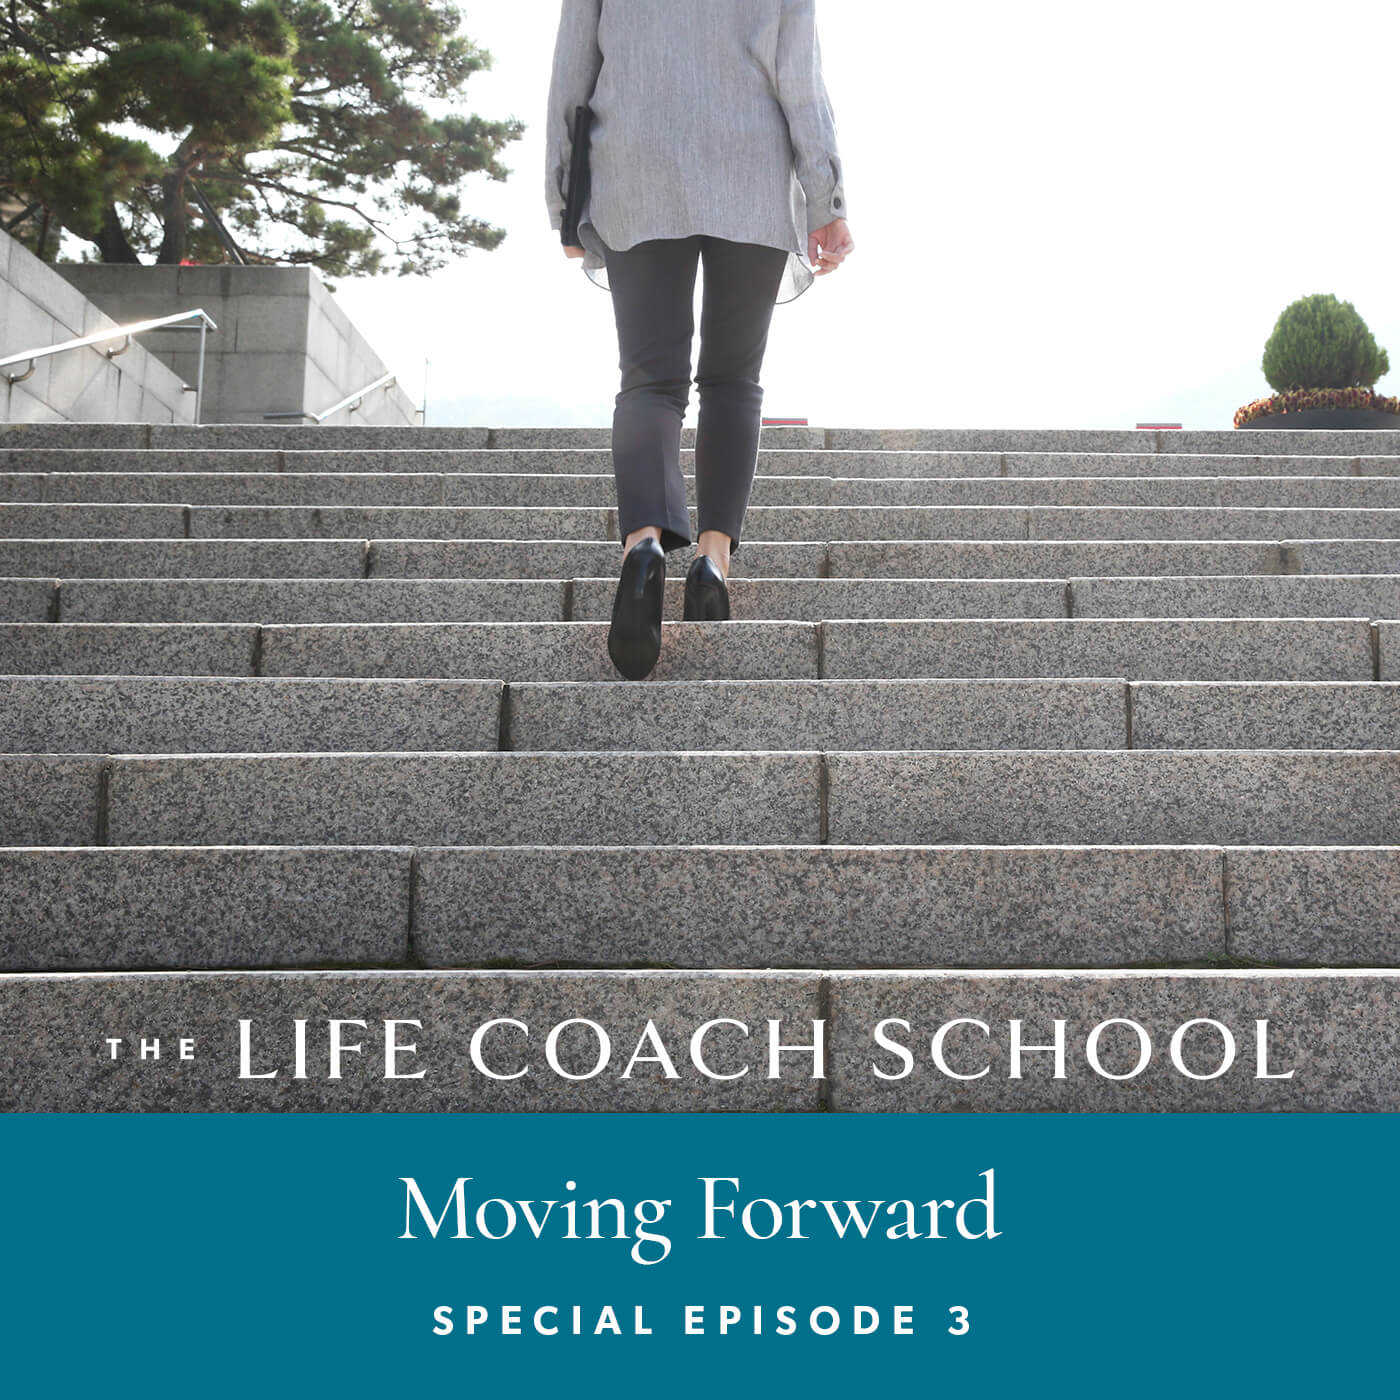 The Life Coach School Podcast with Brooke Castillo | Special Episode | Moving Forward 3